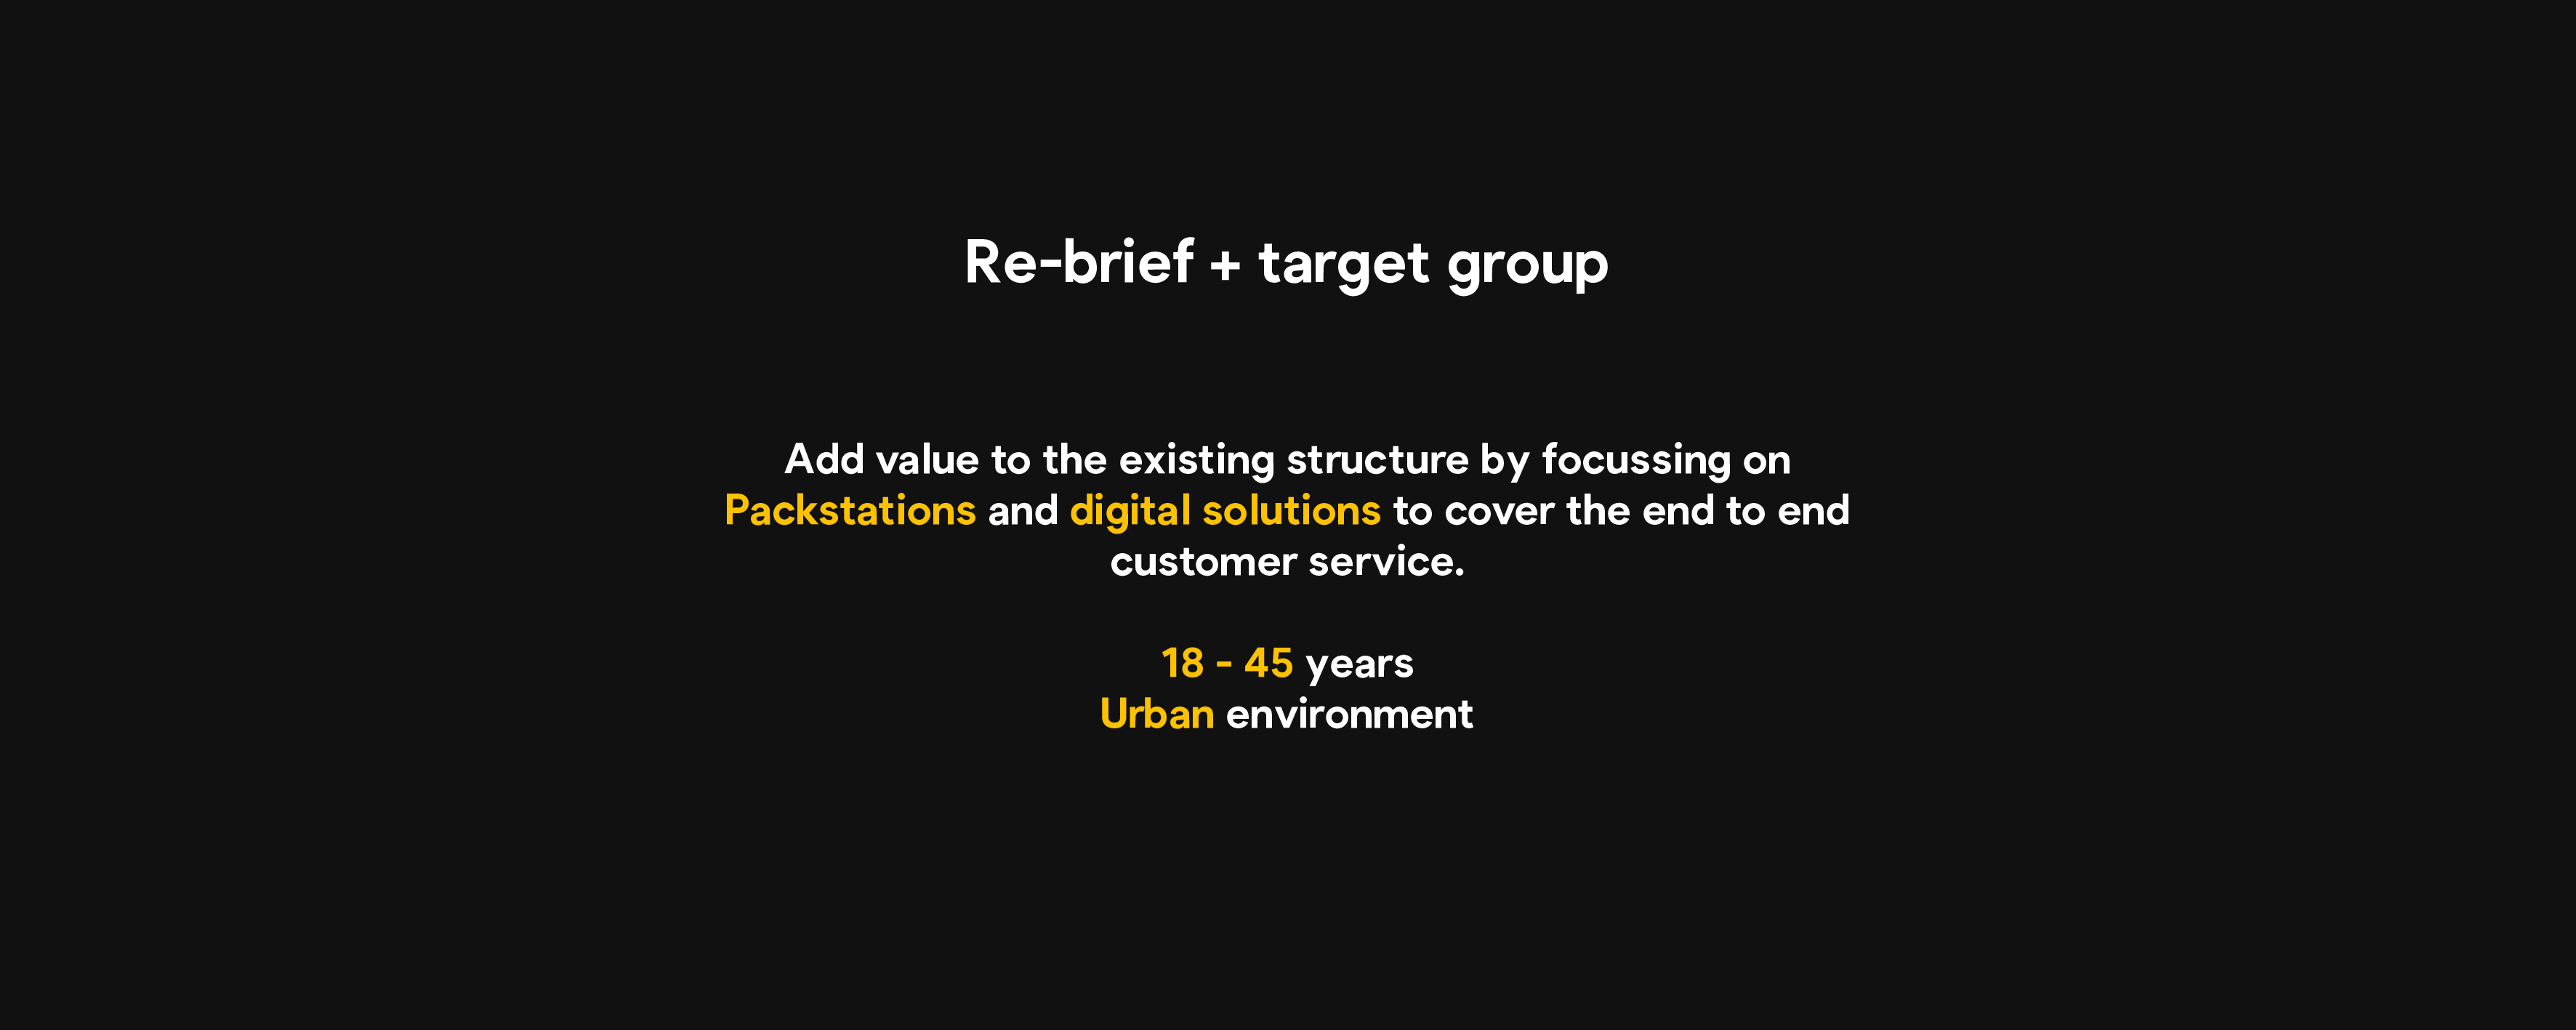 Re-brief and target group